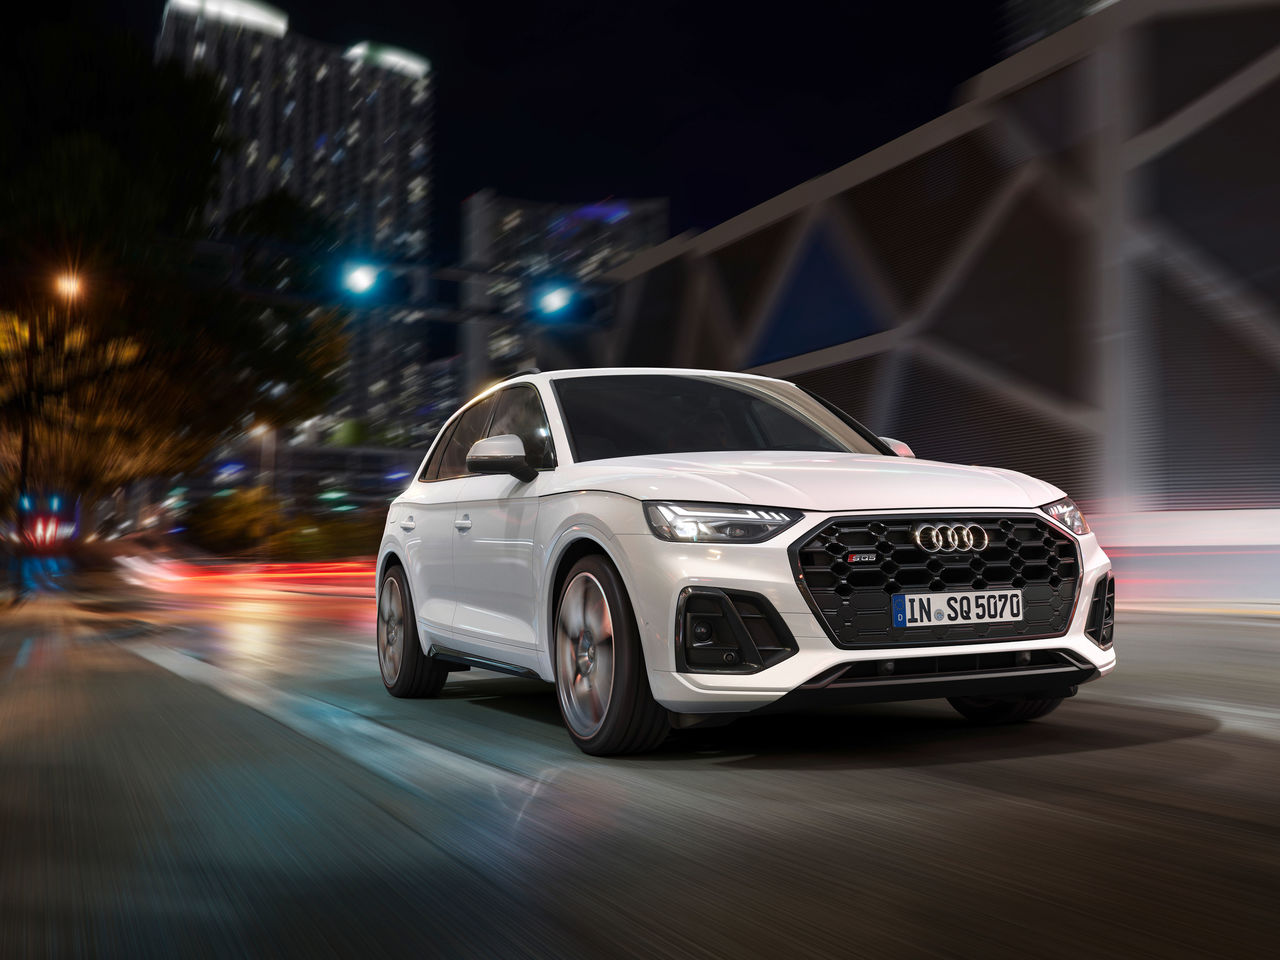 Sporty, powerful, and efficient:   Audi presents the new generation of the SQ5 TDI